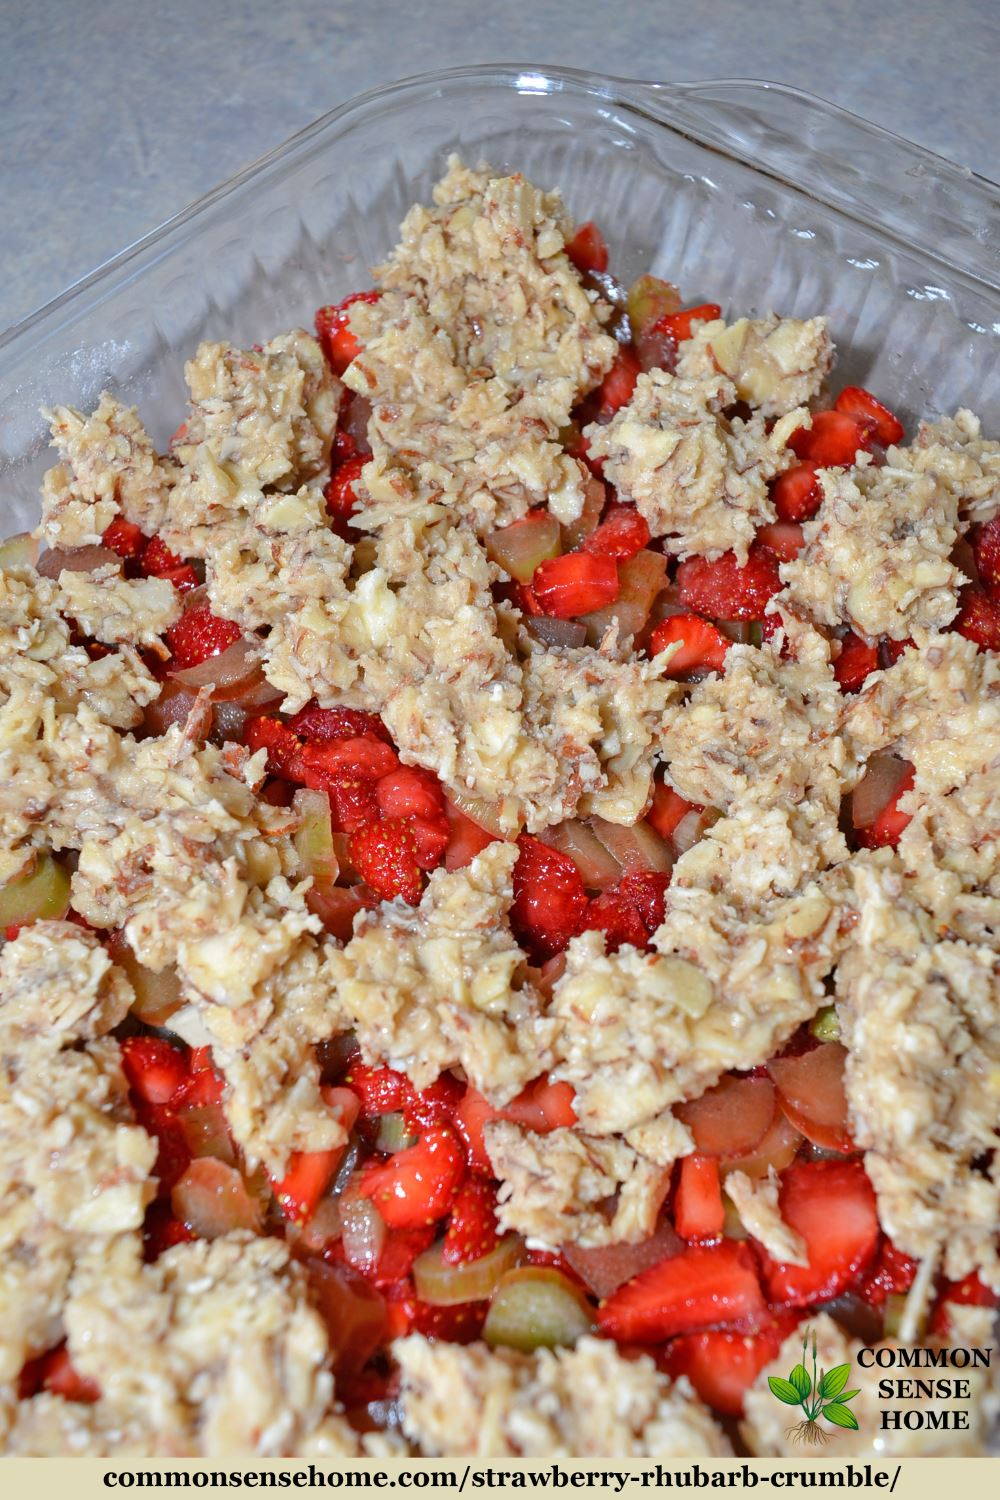 Strawberry Rhubarb Crumble - Quick and Easy, Gluten Free